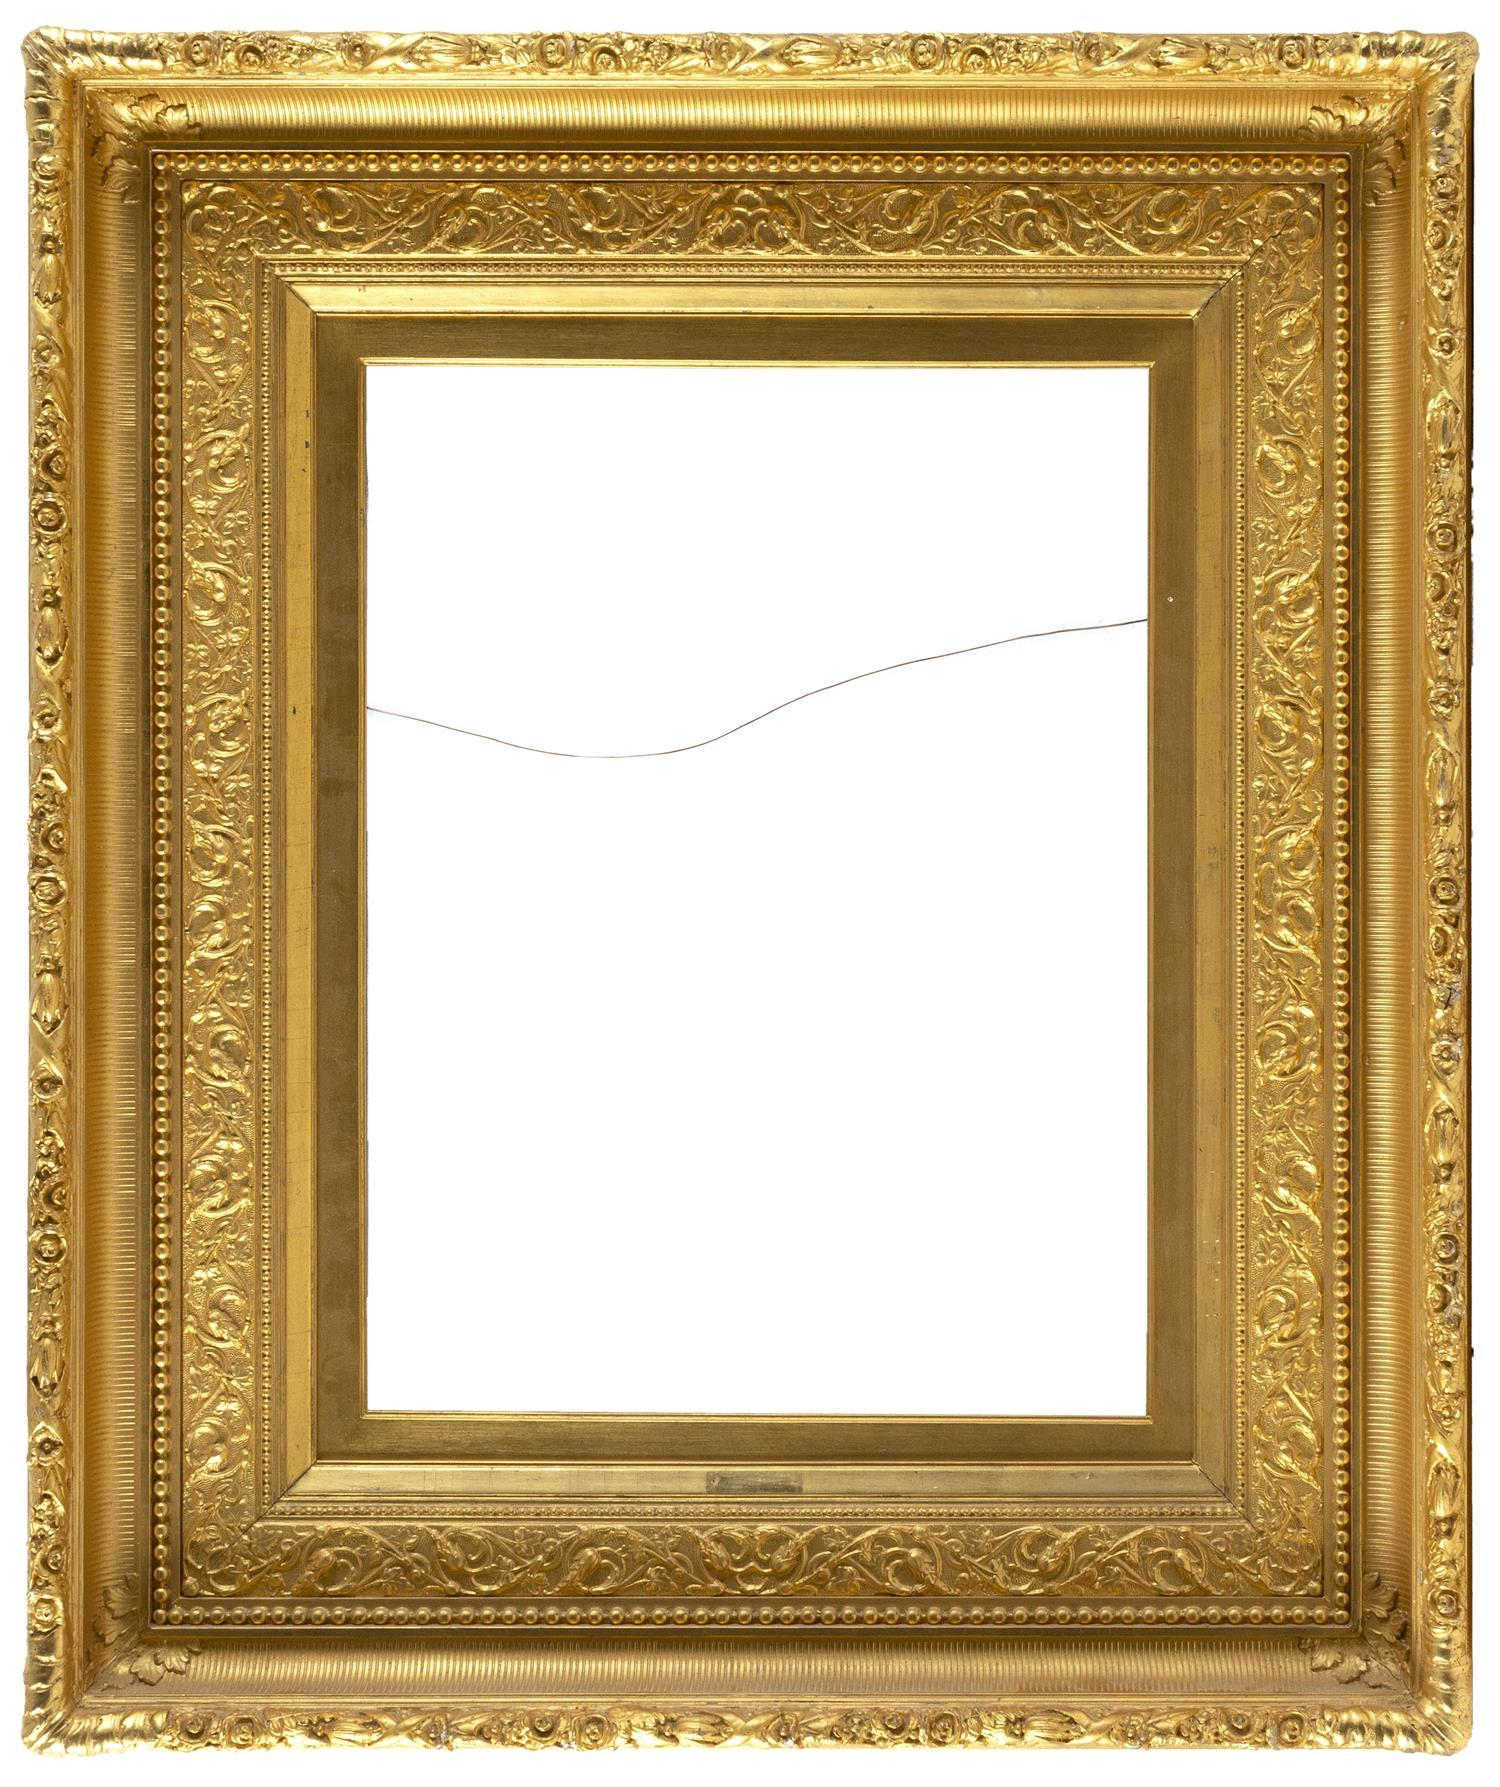 "HUDSON RIVER SCHOOL PICTURE FRAME Classic fluted cove frame with raised foliate molded edge. 32"" x 38"". Aperture 17.5"" x 23.5""."